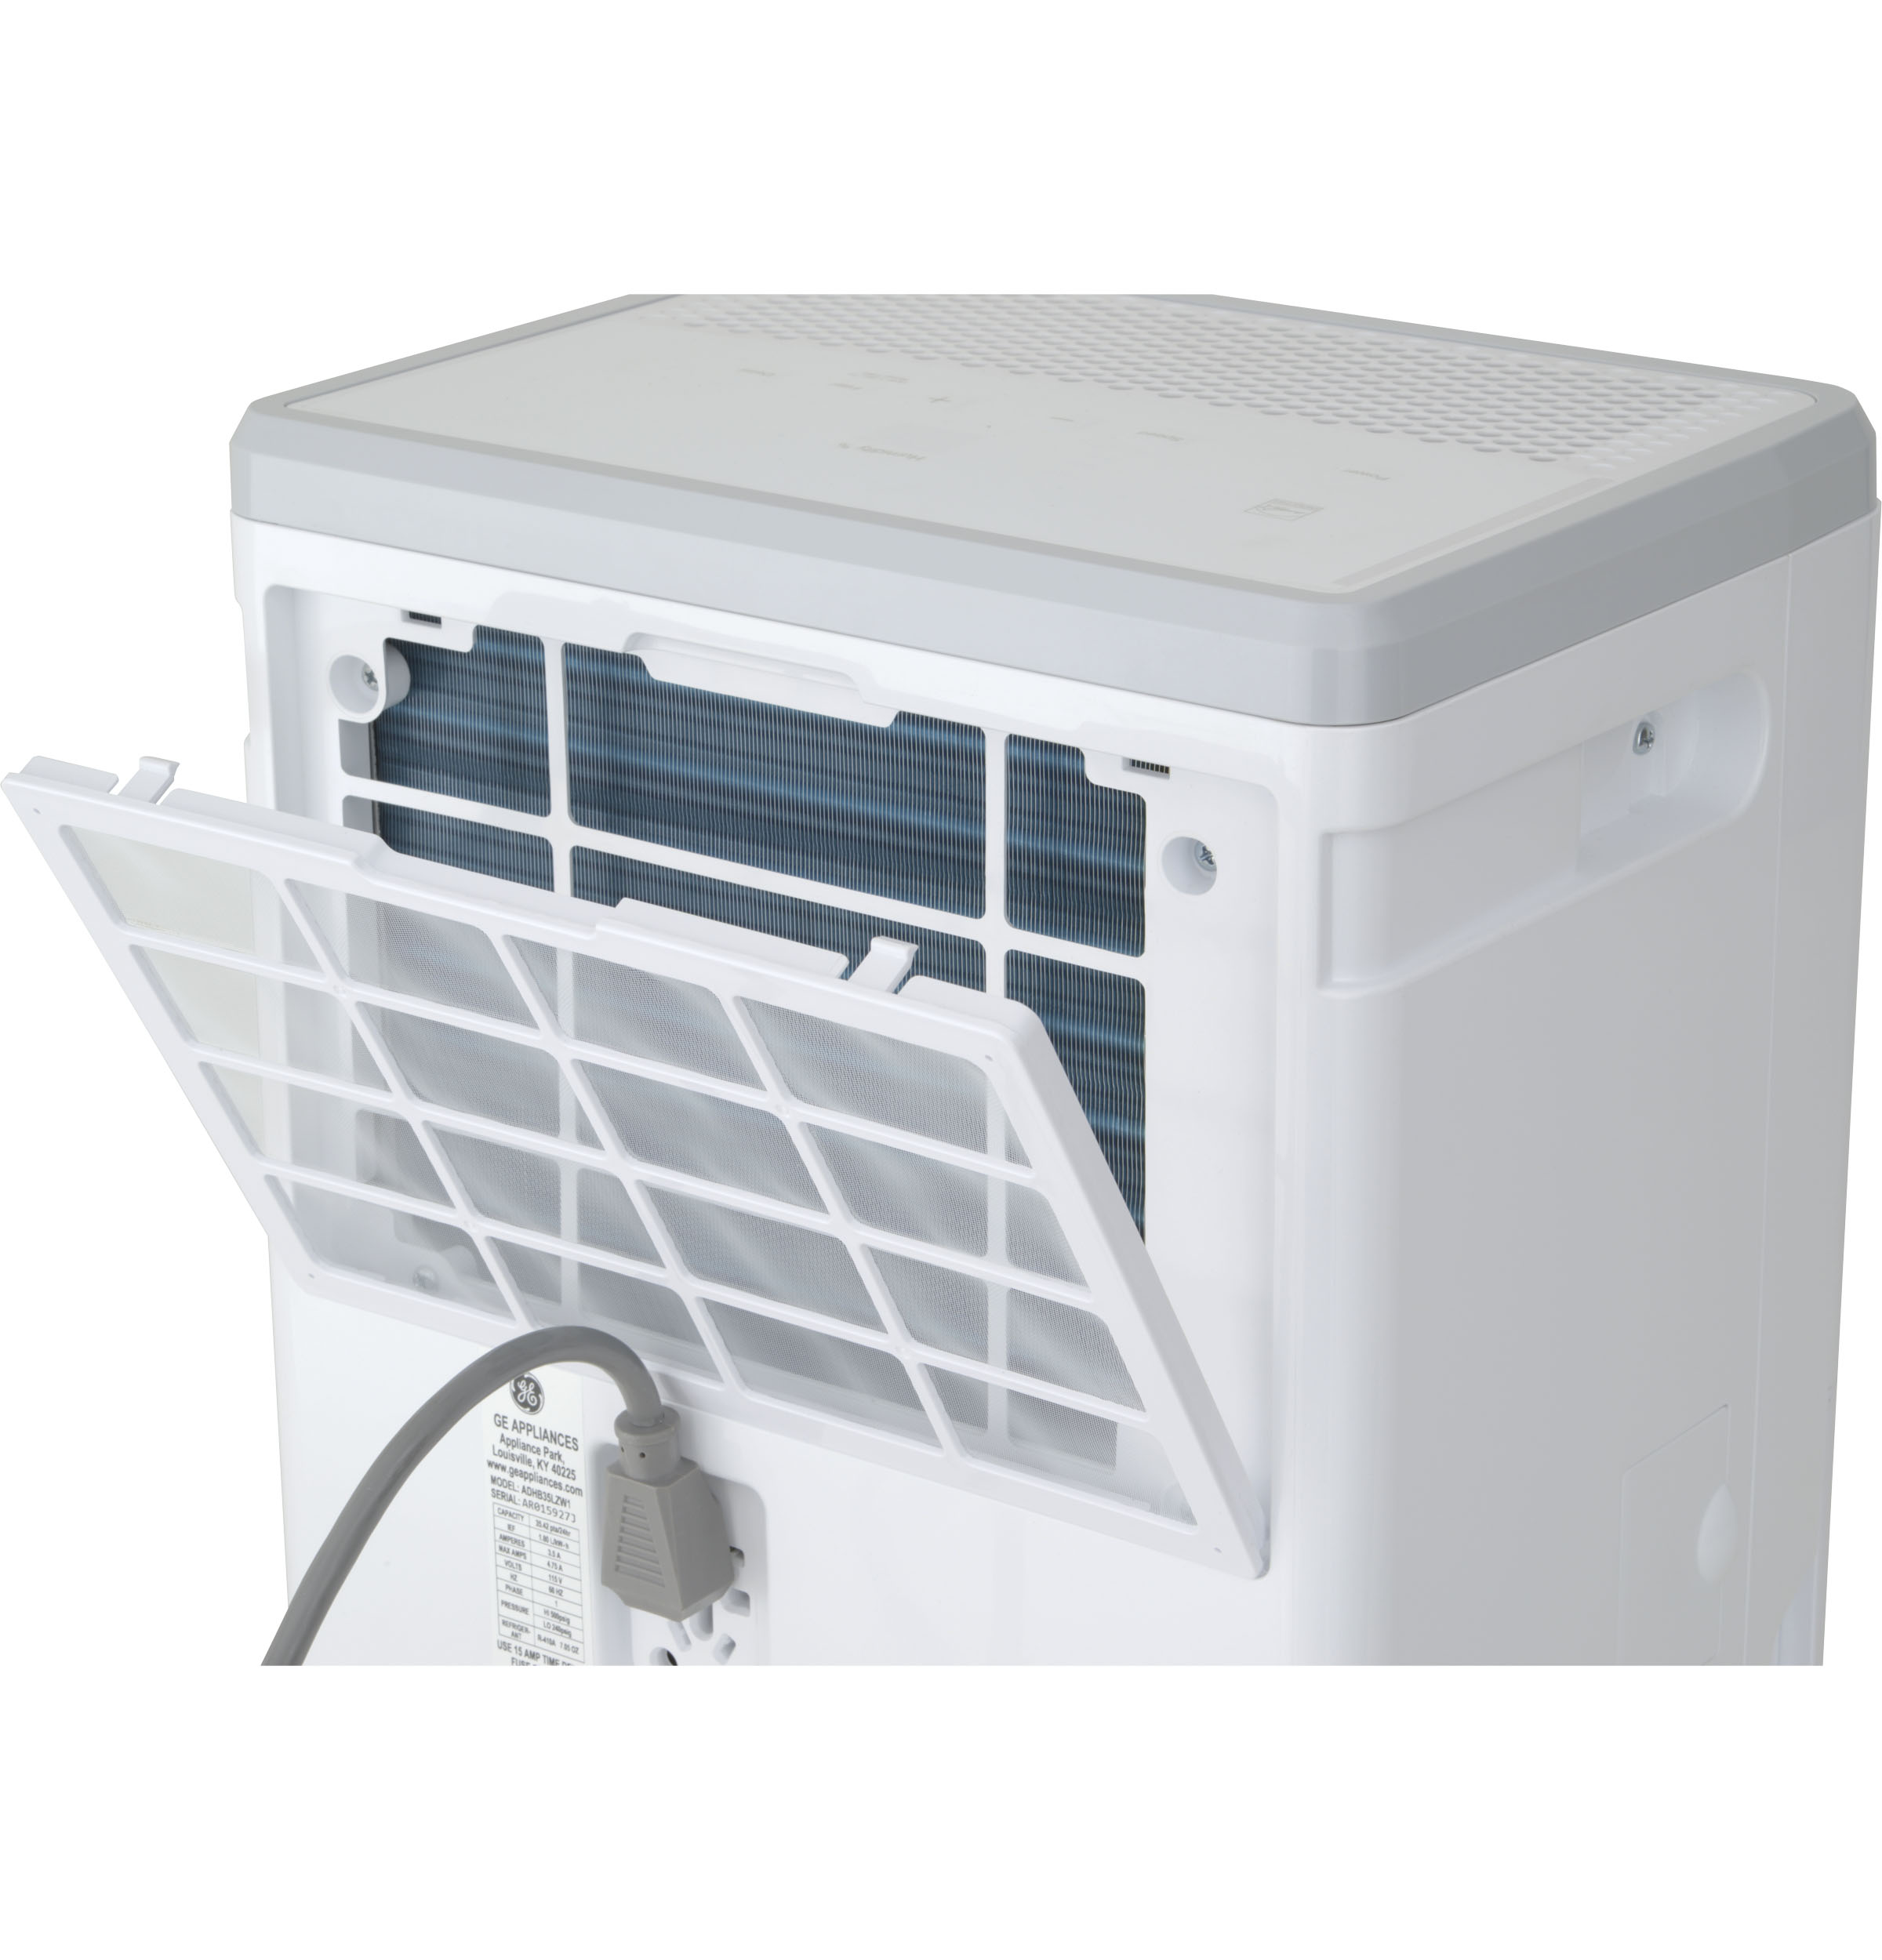 Model: QDHR20LZ | Haier Haier® 20 Pint Dehumidifier for Damp Rooms, Bedroom and Closet, White